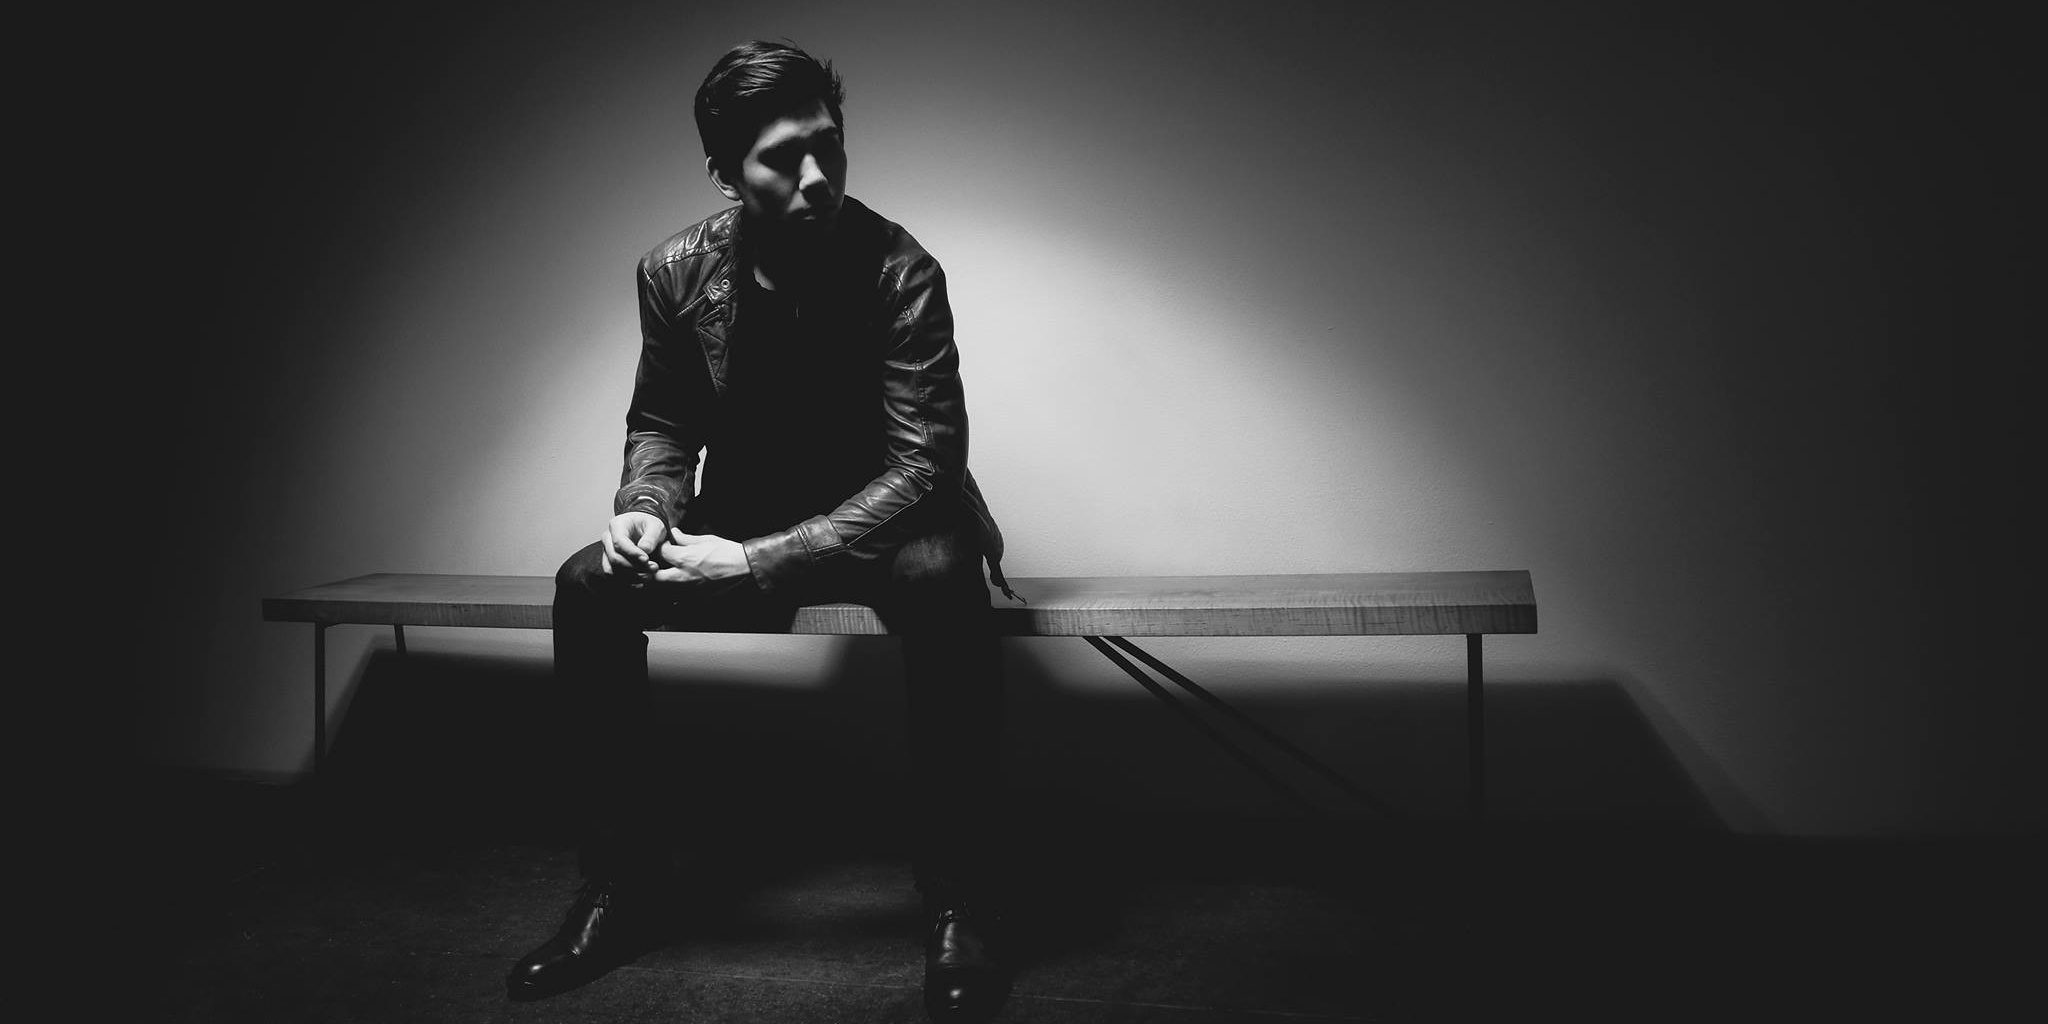 Classical music training shaped EDM DJ Gryffin